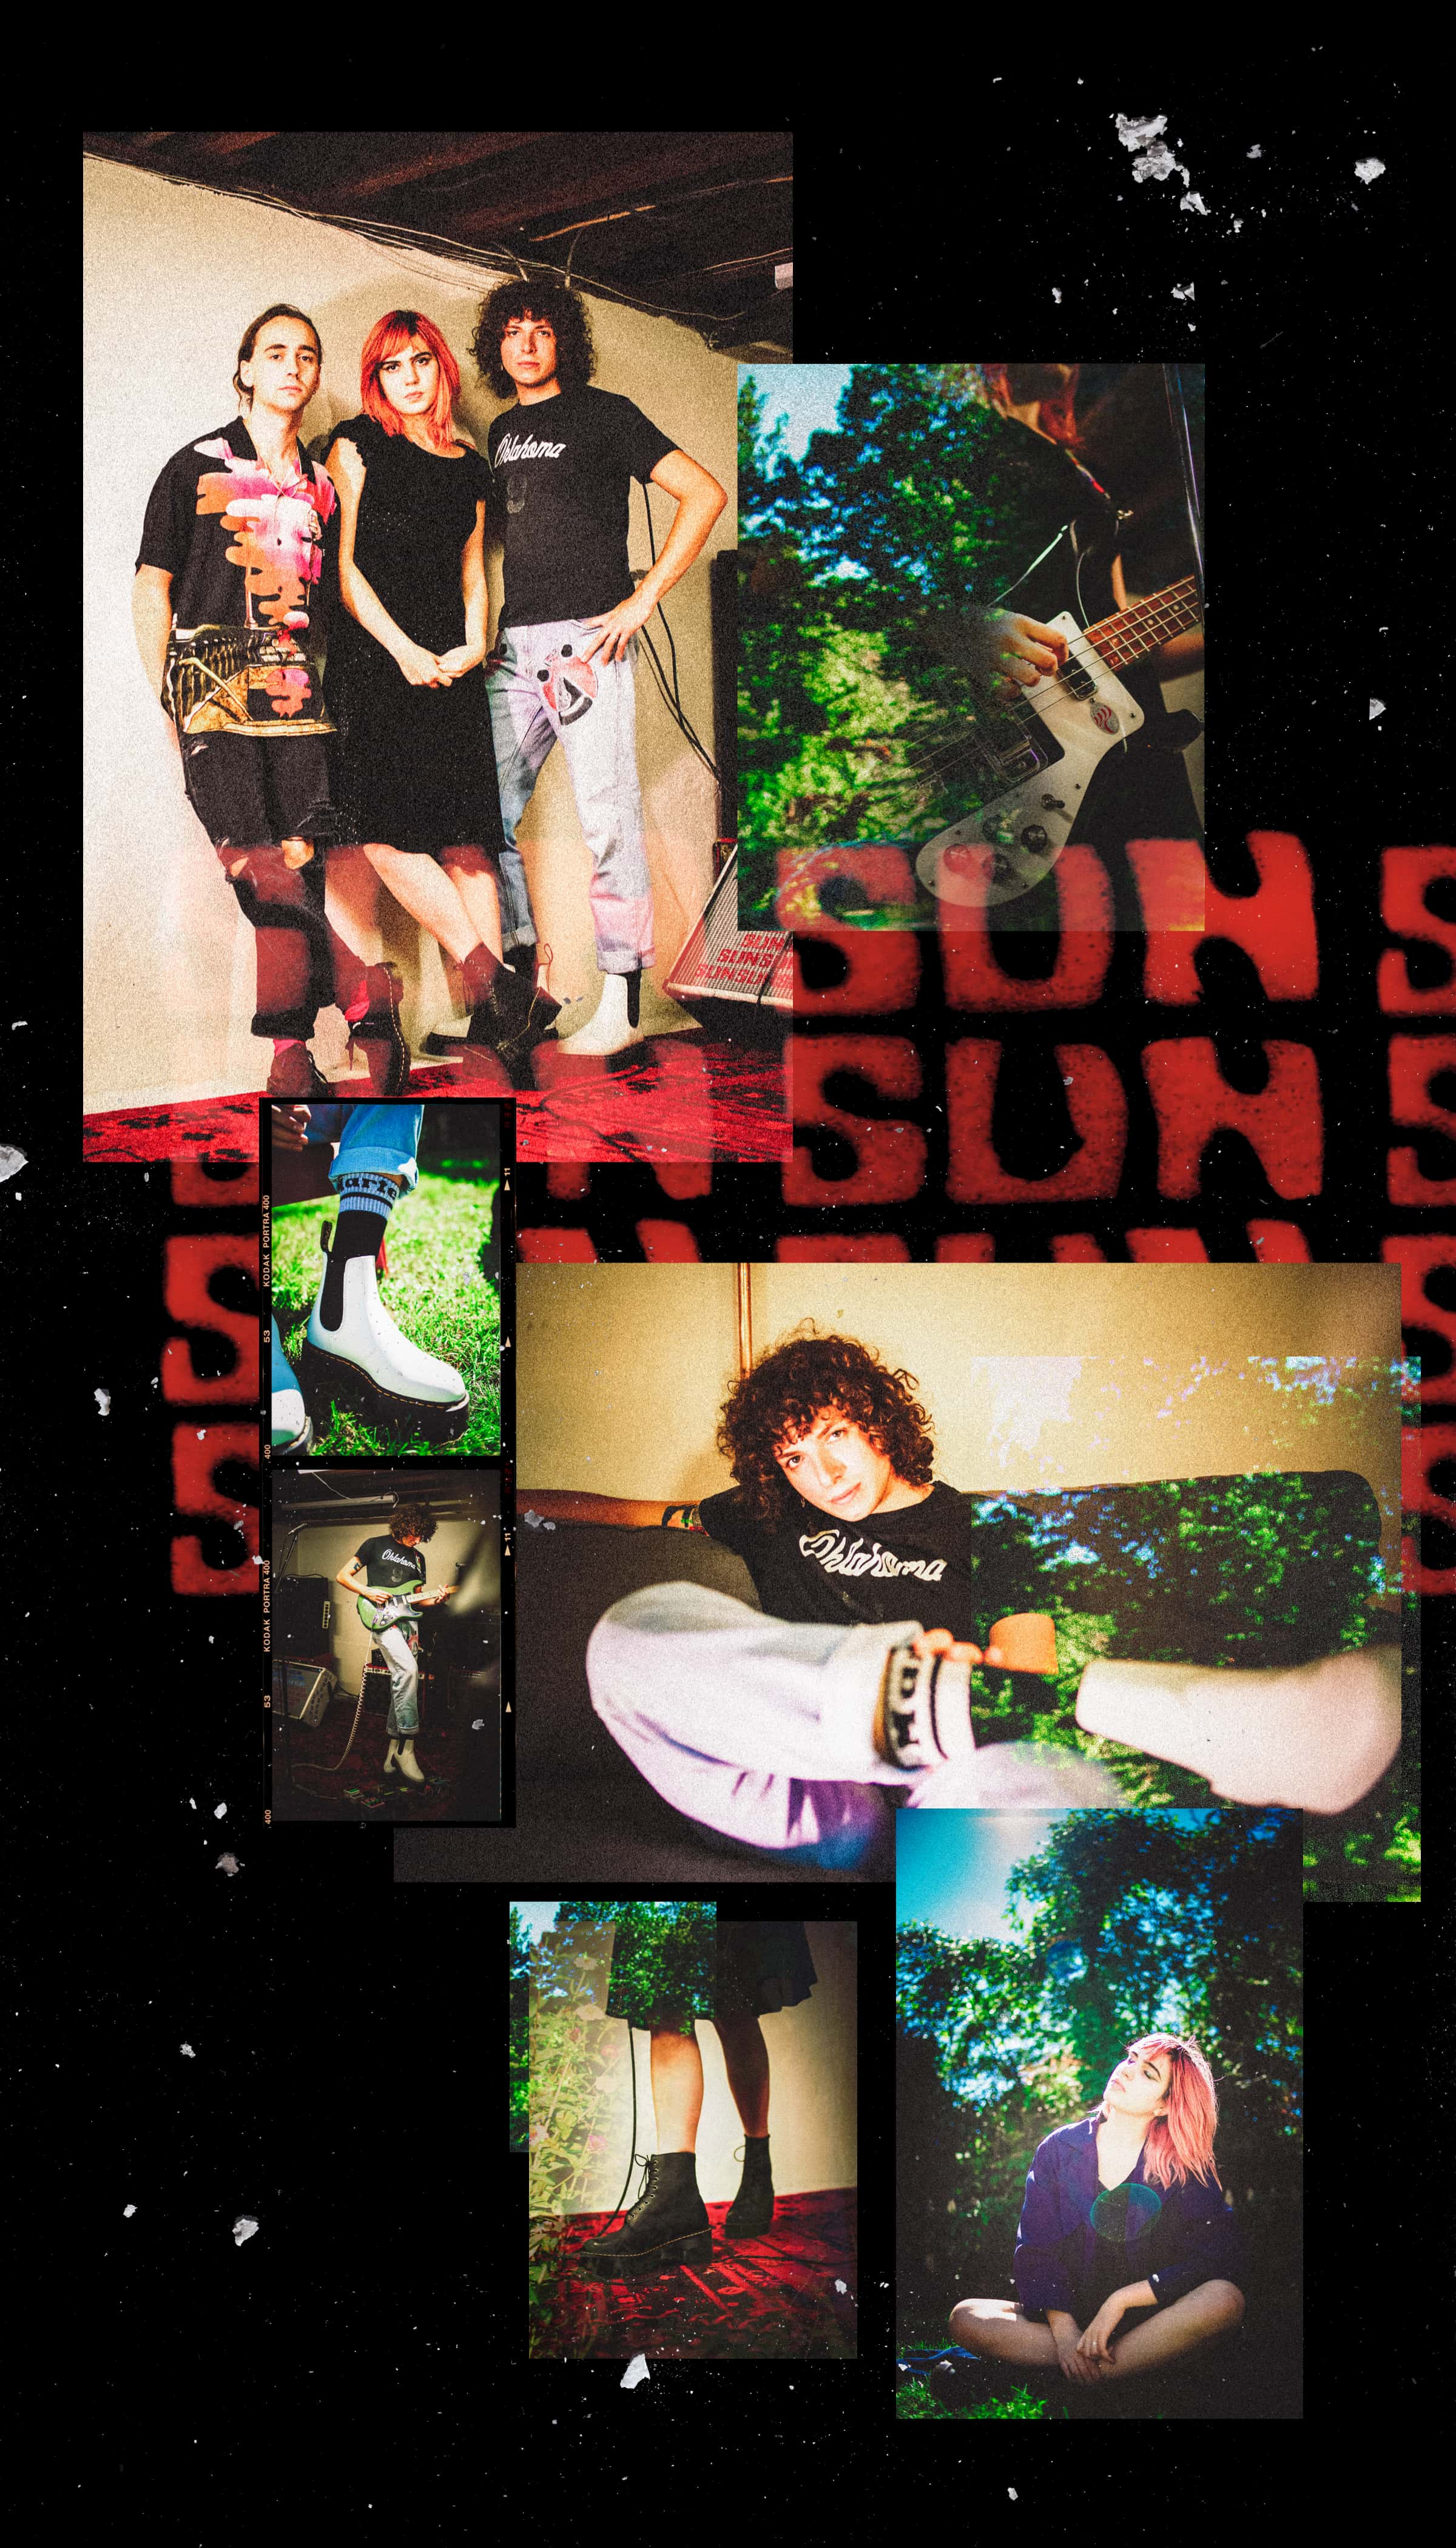 """A collage of photos depicting the trio playing music and lounging showing of their Docs. Behind the collage the word """"SUN"""" repeats."""